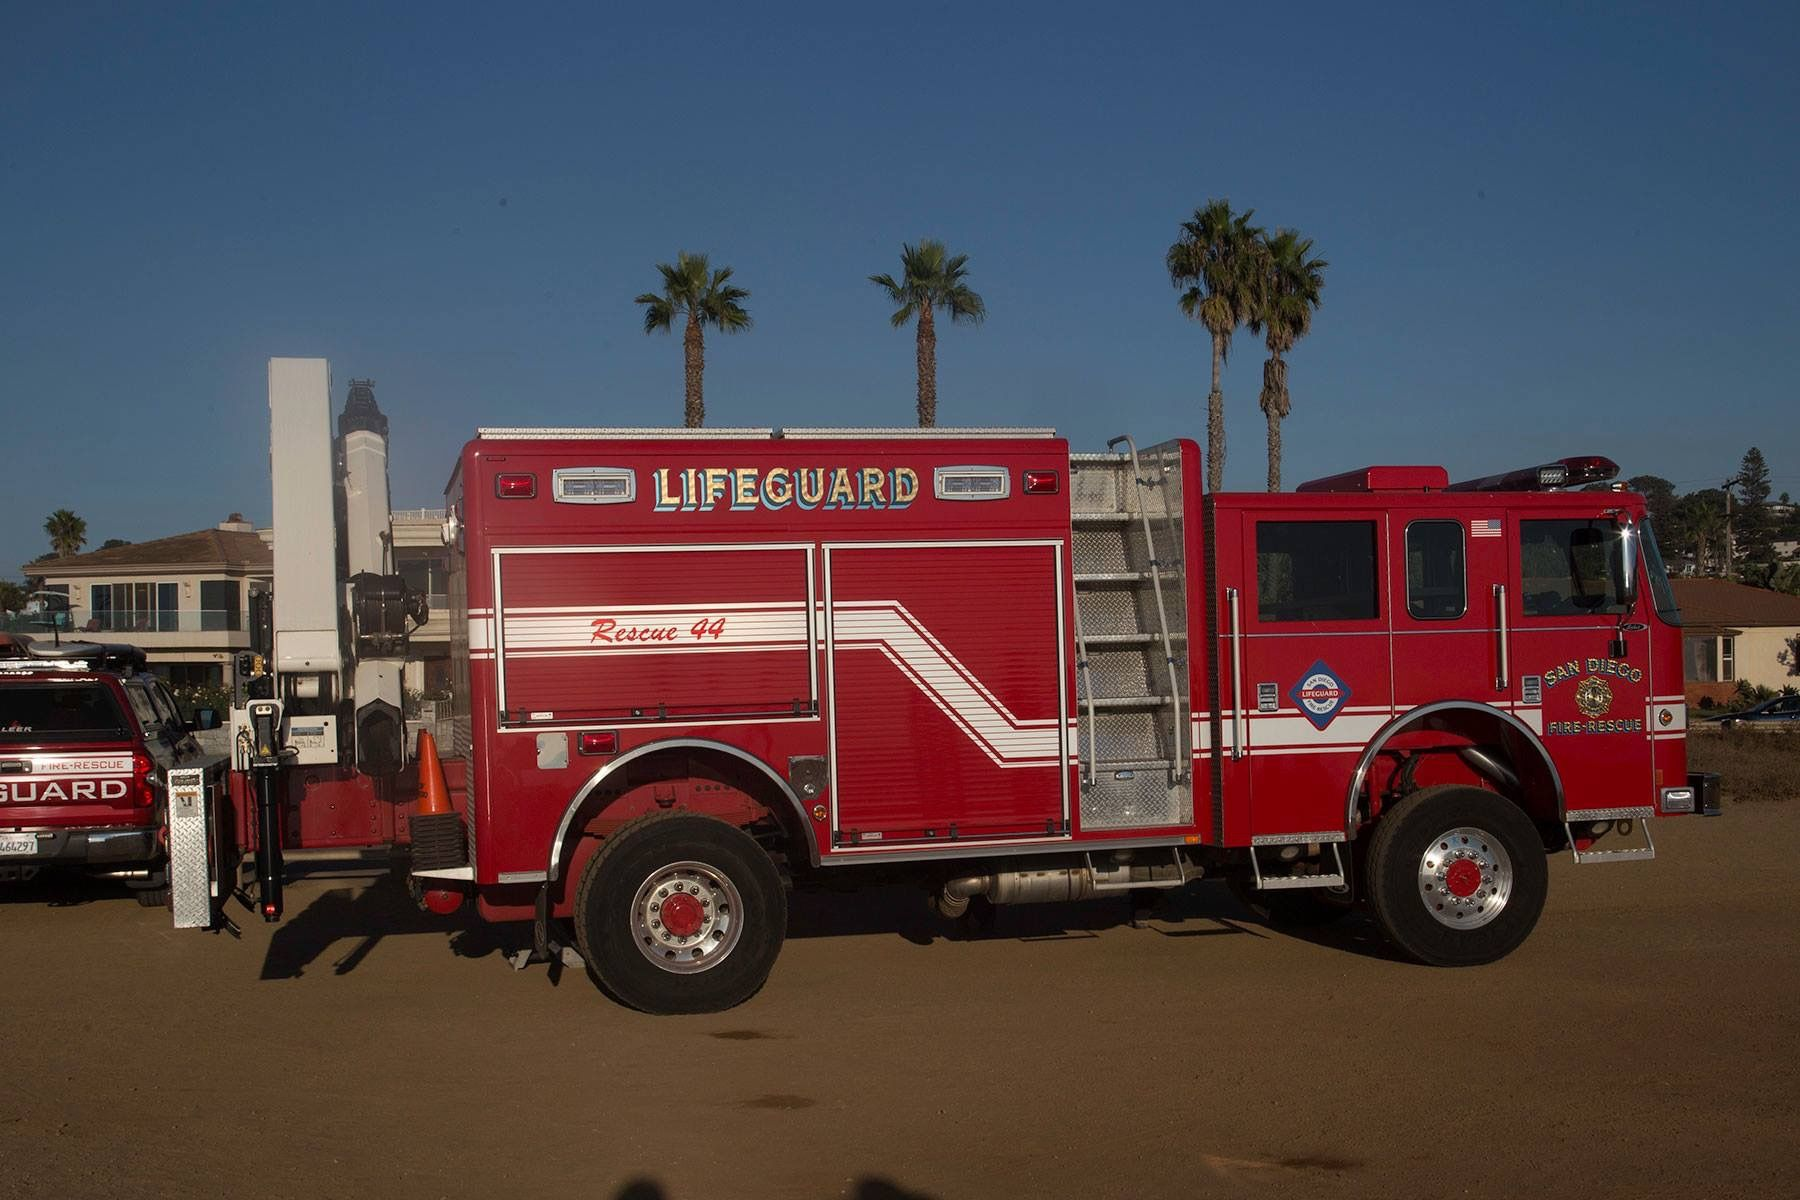 San Diego FD Lifeguard apparatus, equipped for cliff rescues